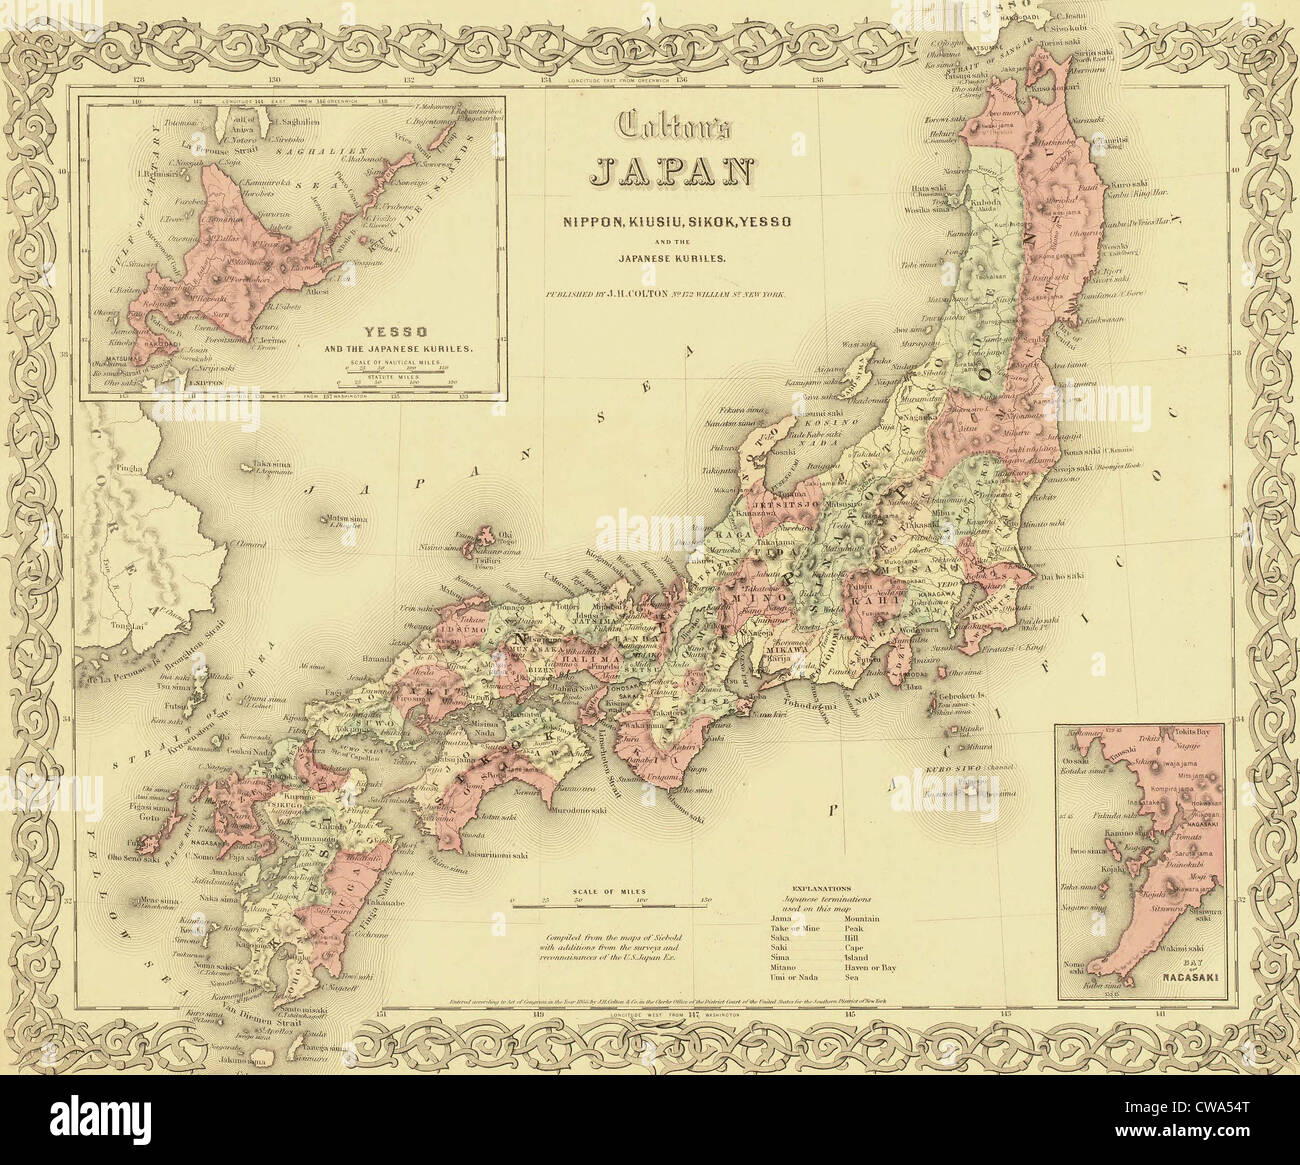 1855 map of Japan showing prefecture boundaries Stock Photo